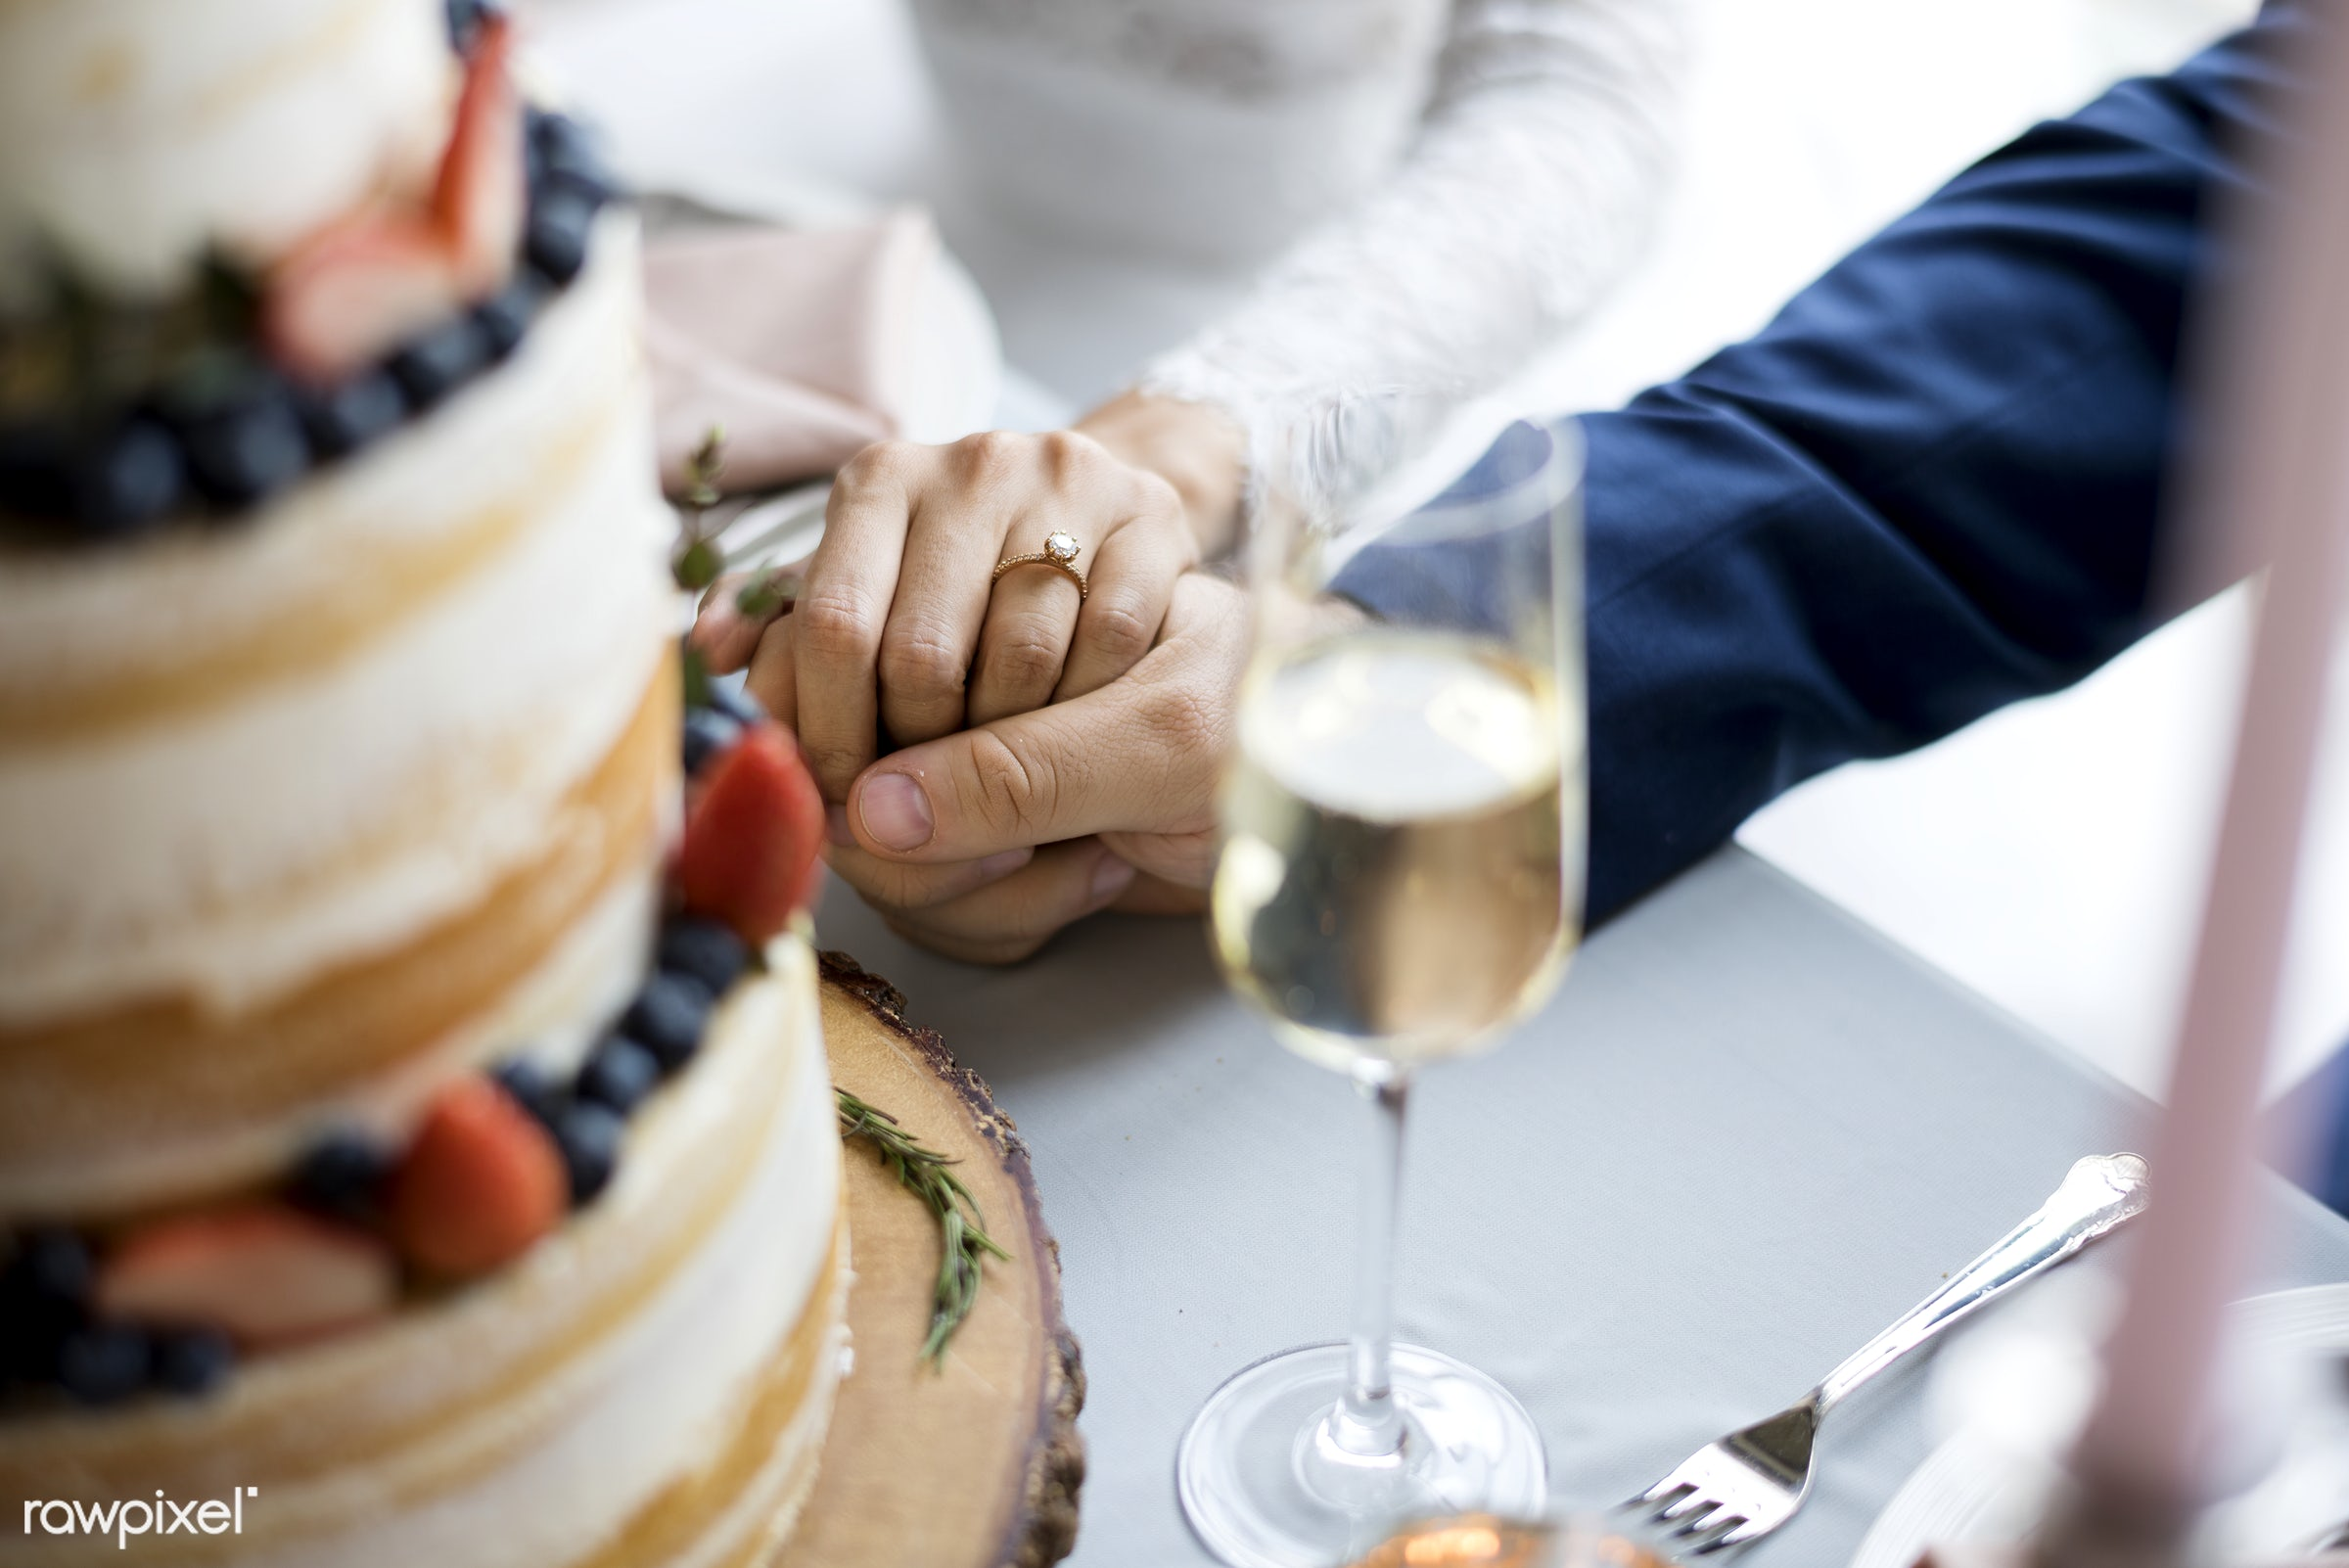 holding, people, together, love, married, hands, glass, couple, bride, closeup, ring, cake, champagne, newlywed, ceremony,...